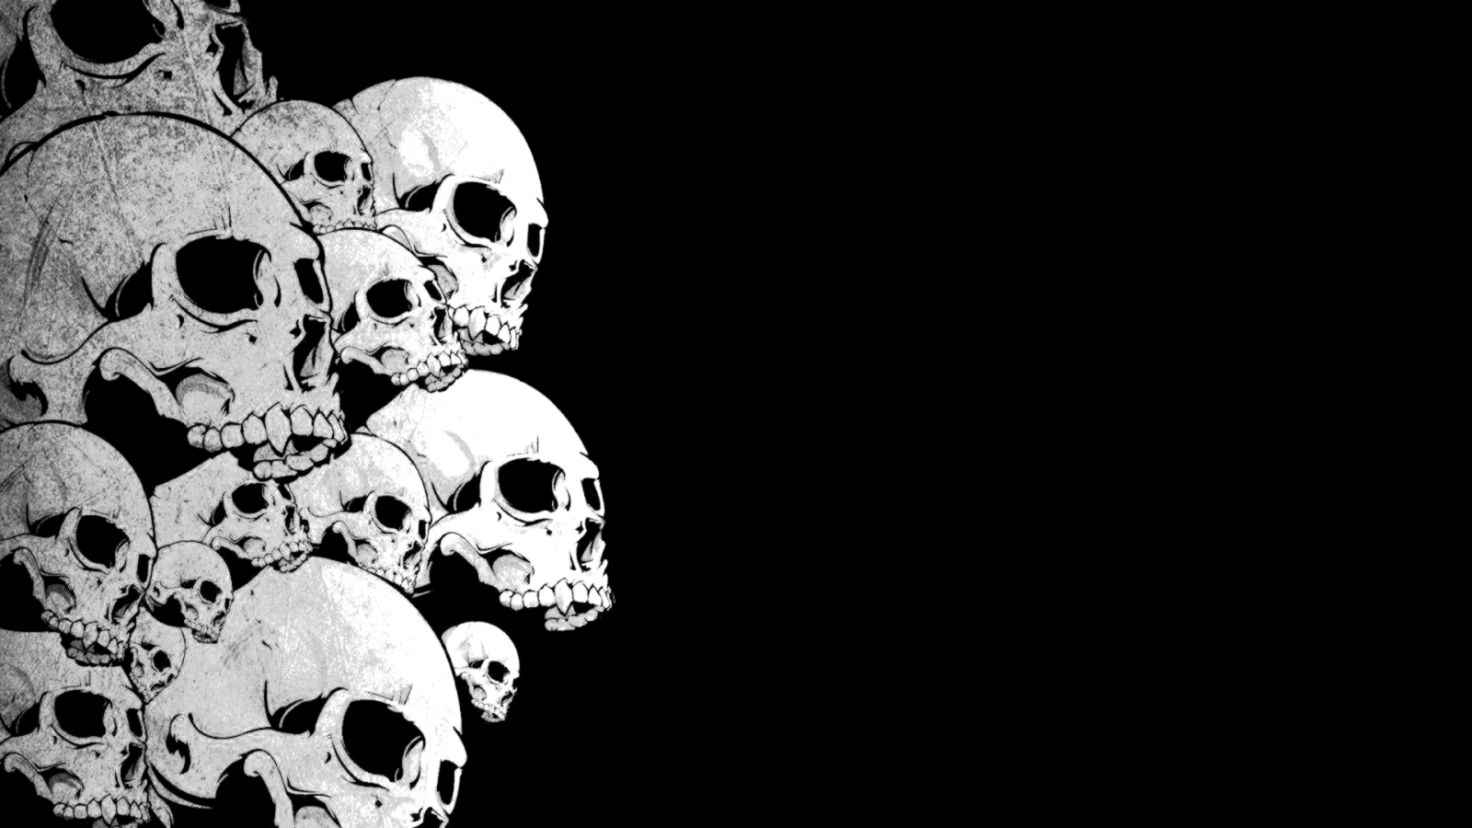 Wallpaper Hd 1080p Black And White Skull Animated Wallpapers Quality